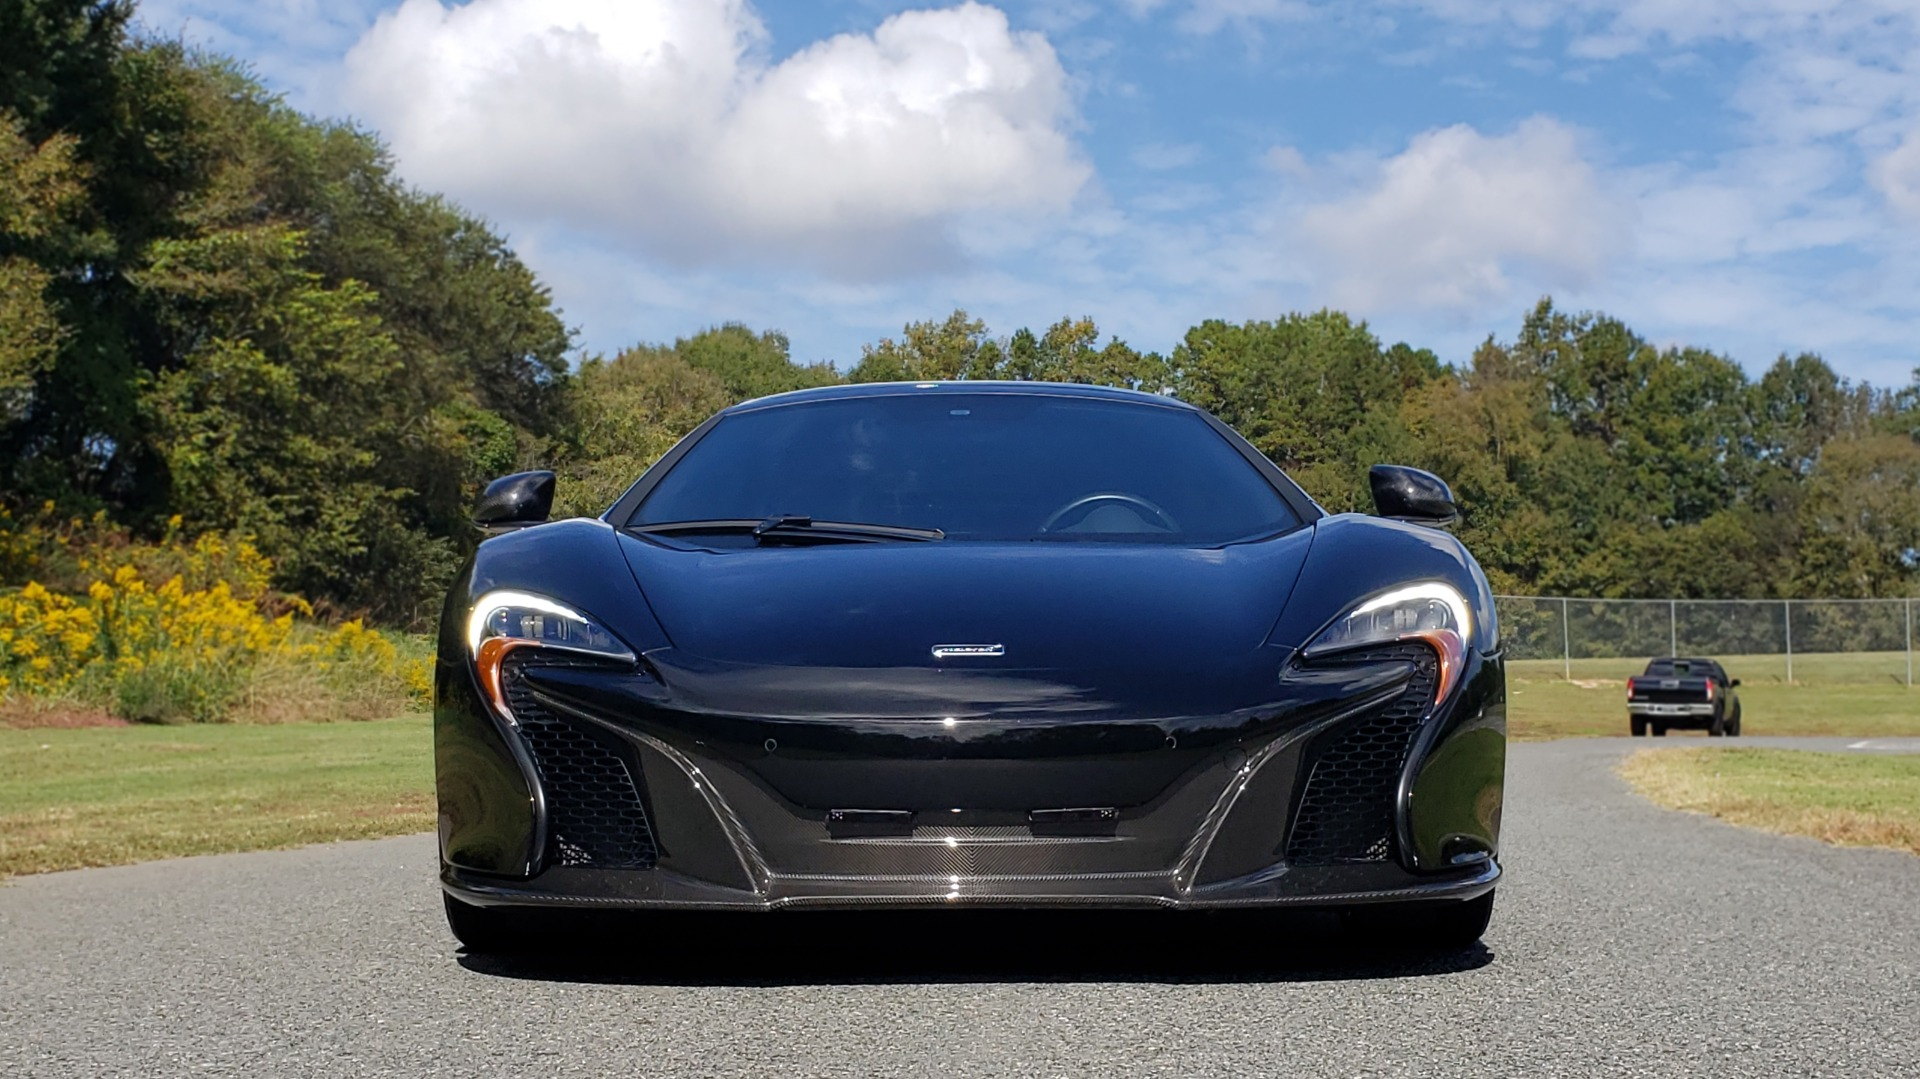 Used 2016 McLaren 650S SPIDER / 641HP / PARK SENSORS / LOW MILES / 1-OWNER for sale Sold at Formula Imports in Charlotte NC 28227 25